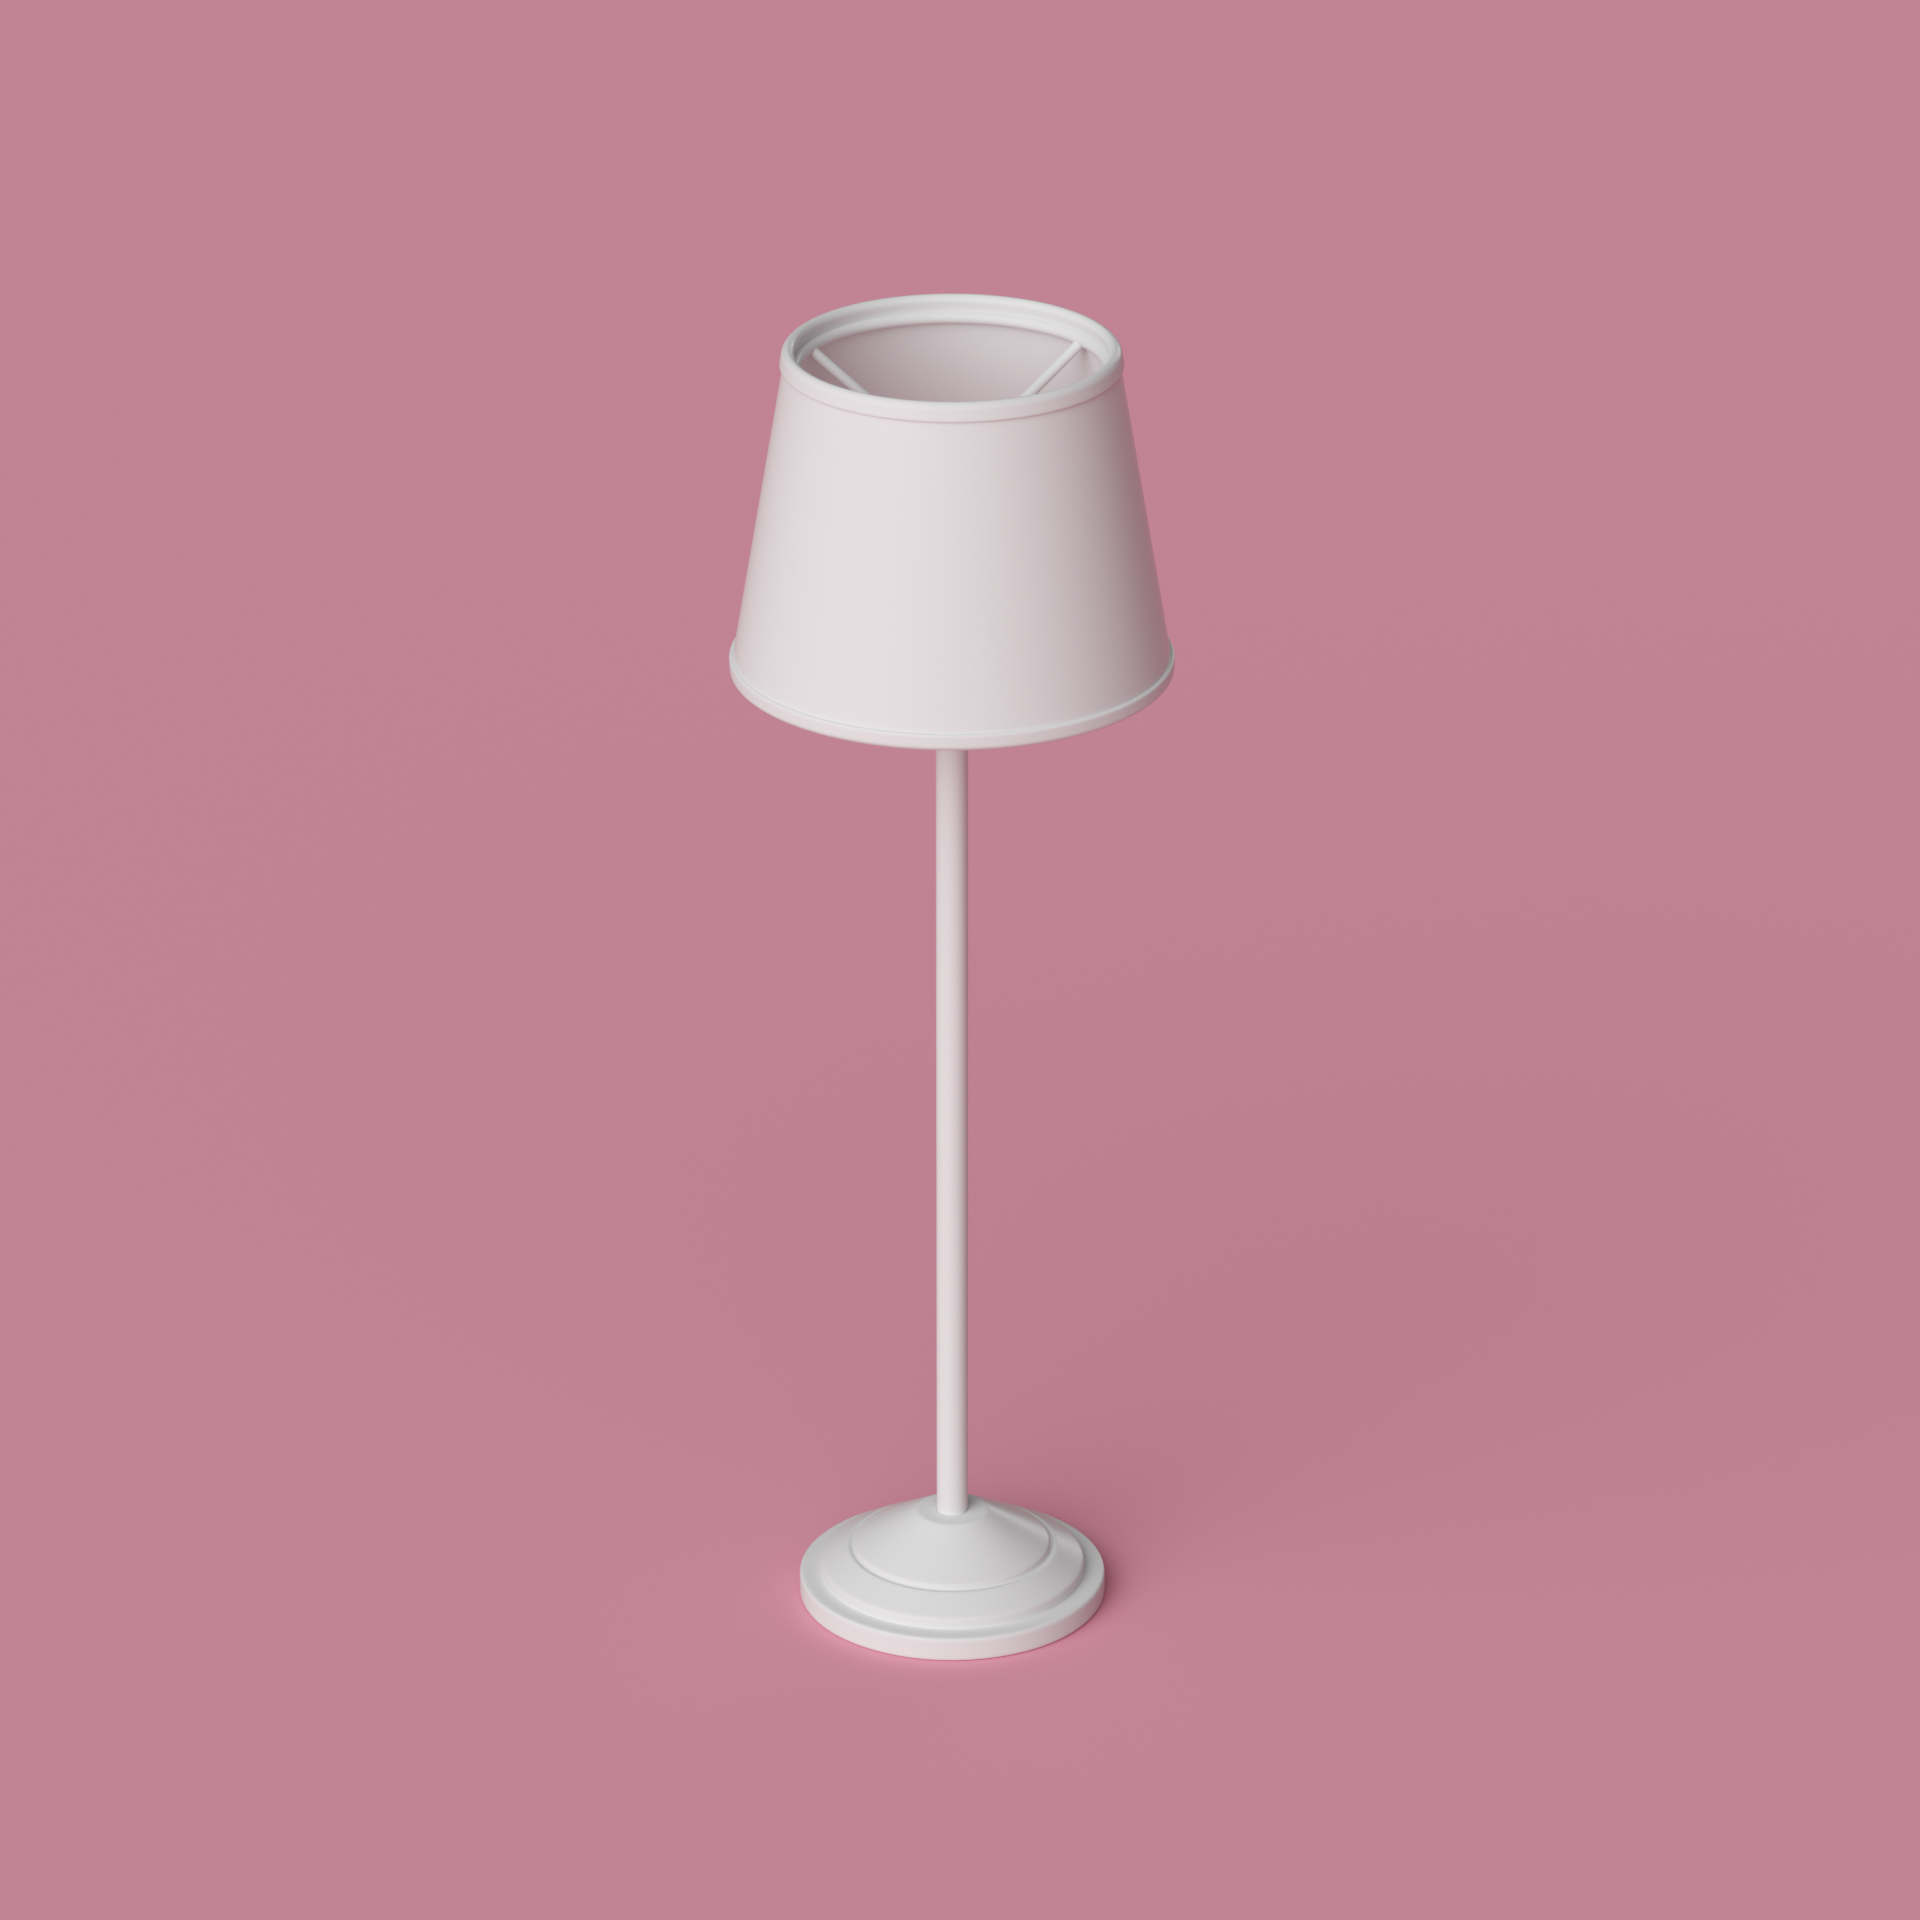 standing_lamp.png